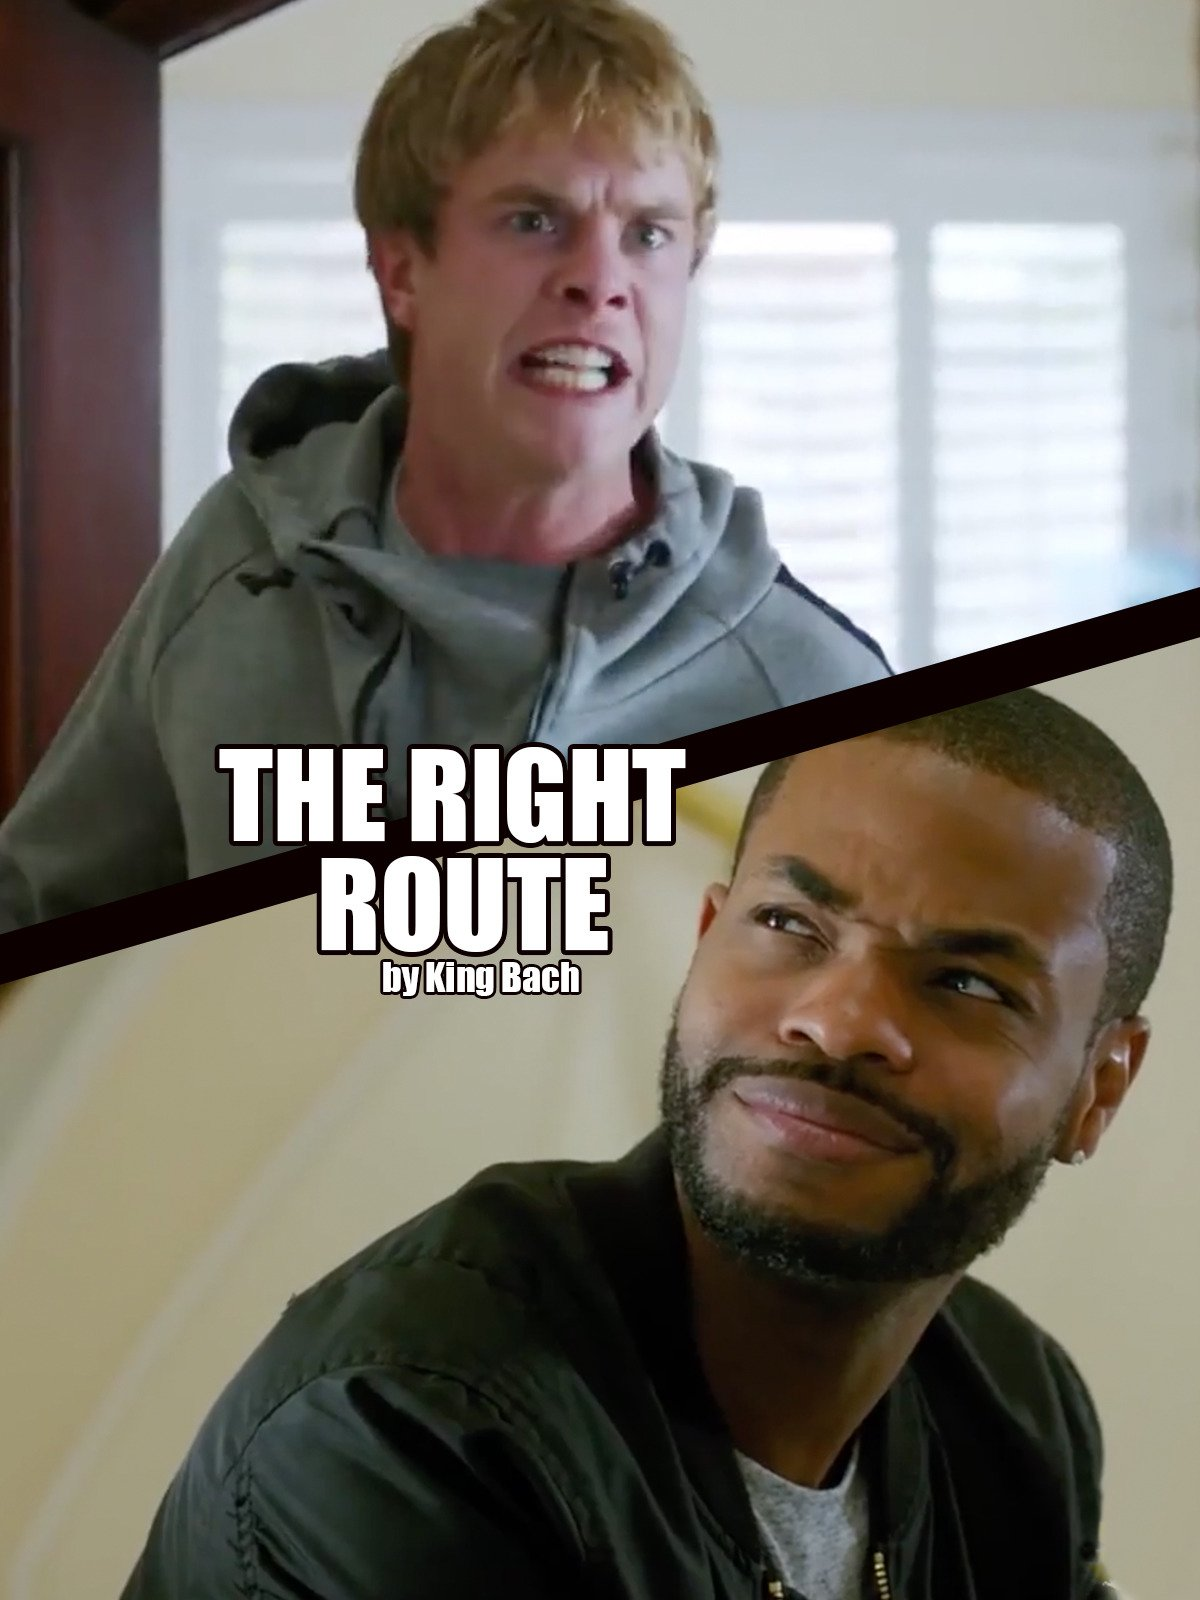 The Right Route by King Bach